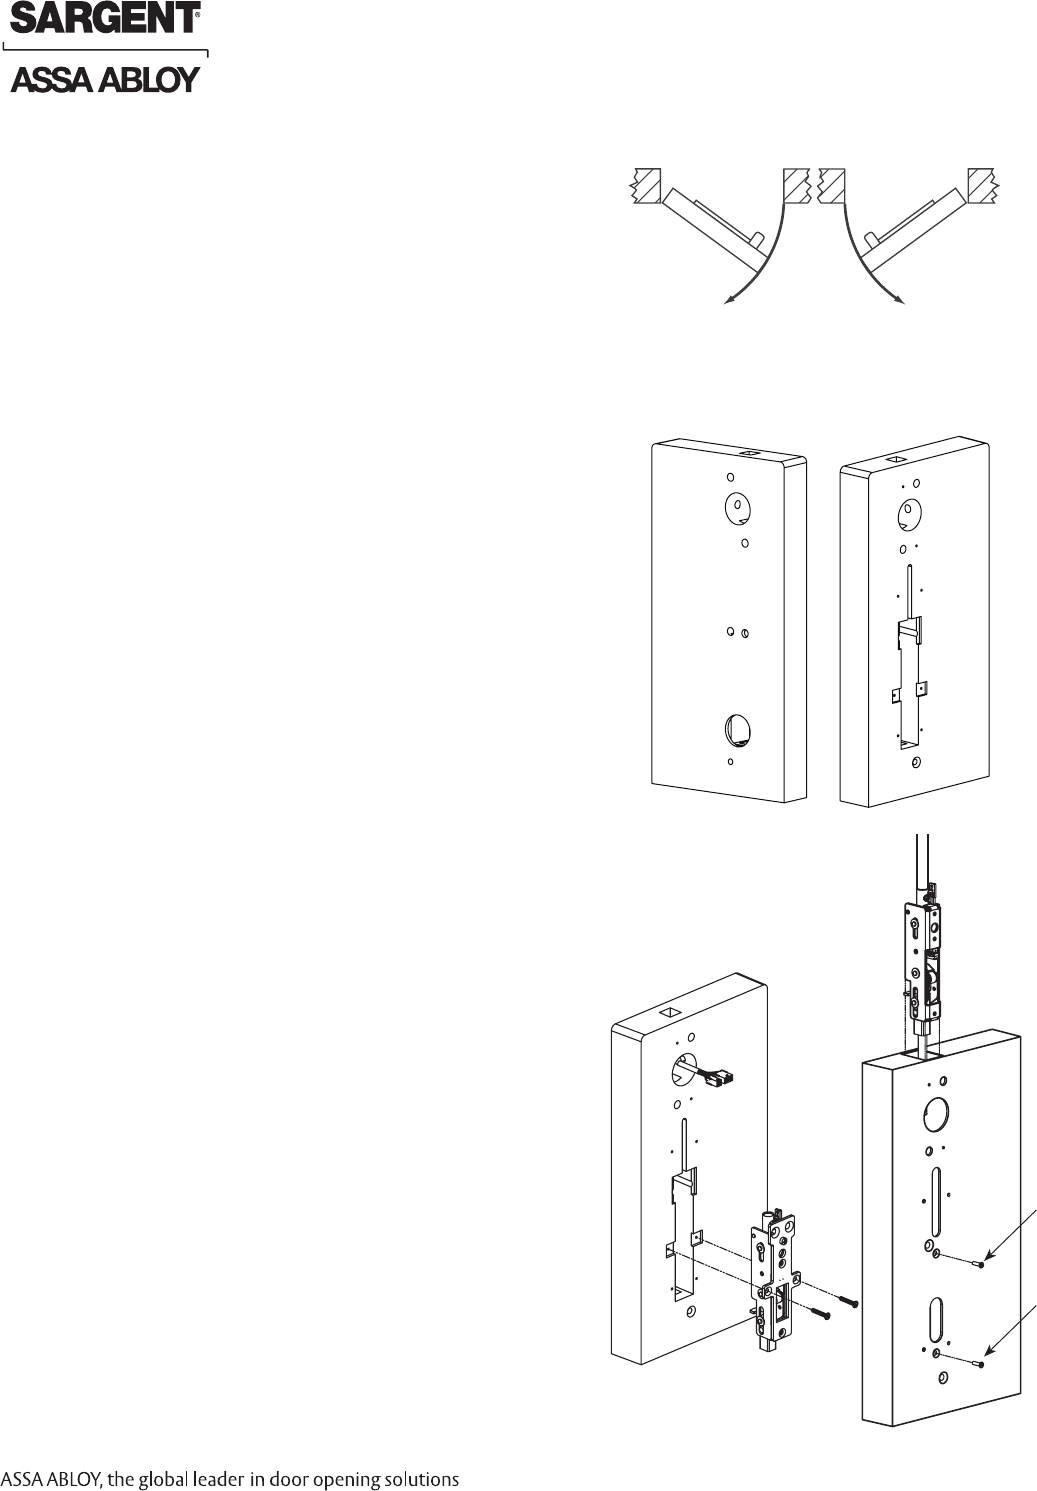 Assaloy Scyprox2 Harmony H2 Series Lock User Manual Fcc Part 15 Wiring Diagrams By Sargent Locks Copyright 2009 Manufacturing Company An Assa Abloy Group All Rights Reserved